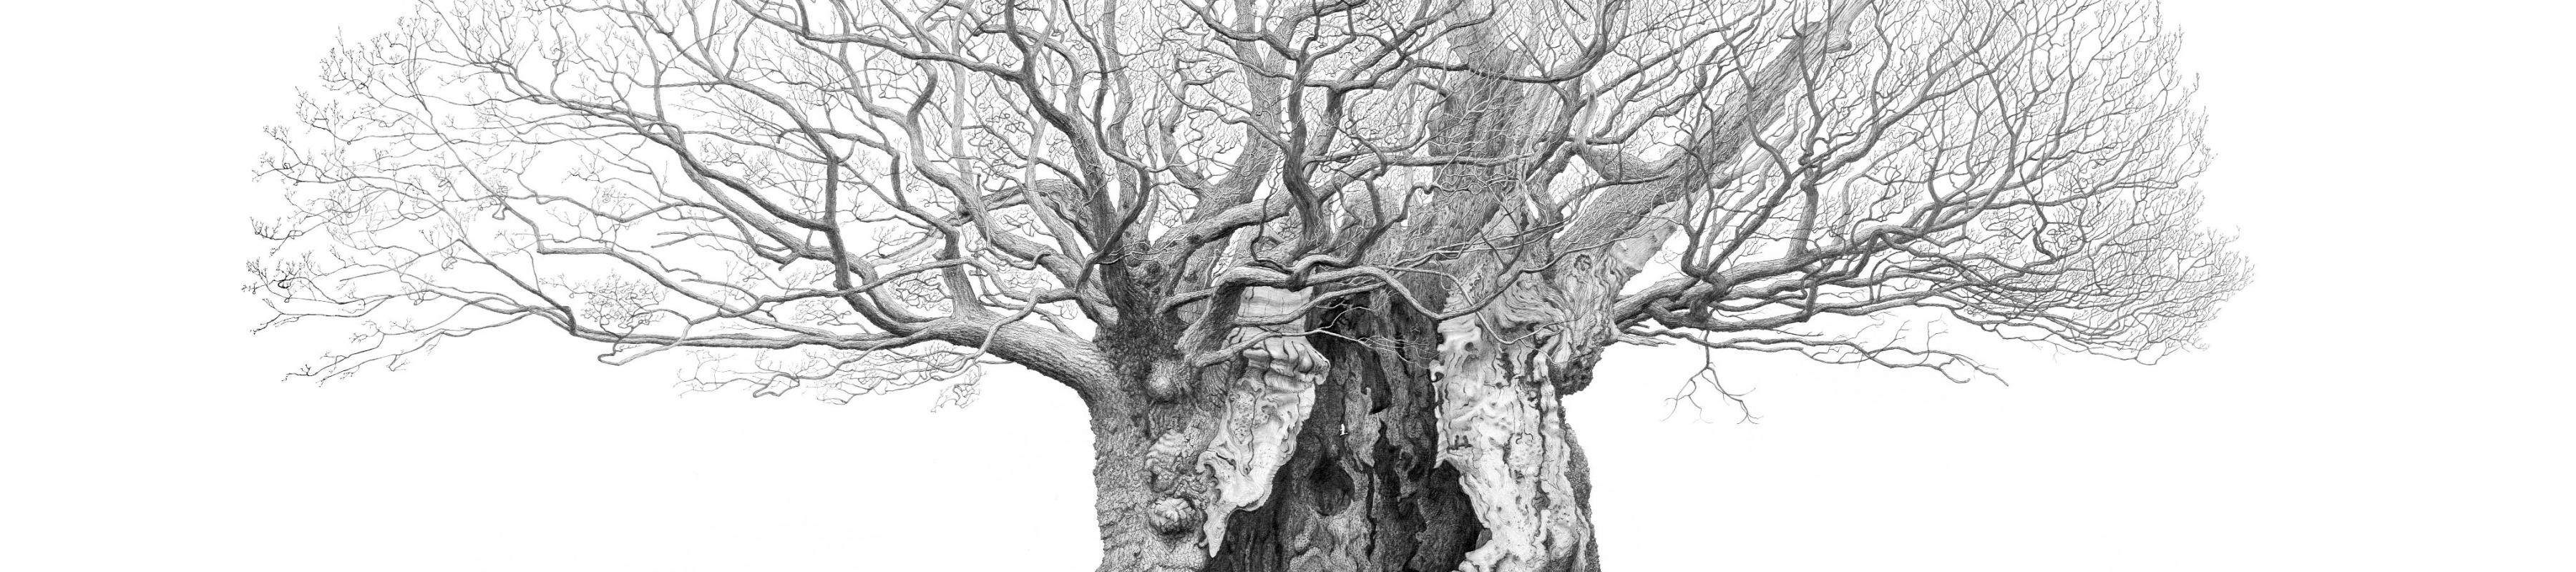 Drawing of Queen Elizabeth Oak in Sussex by artist Mark Frith